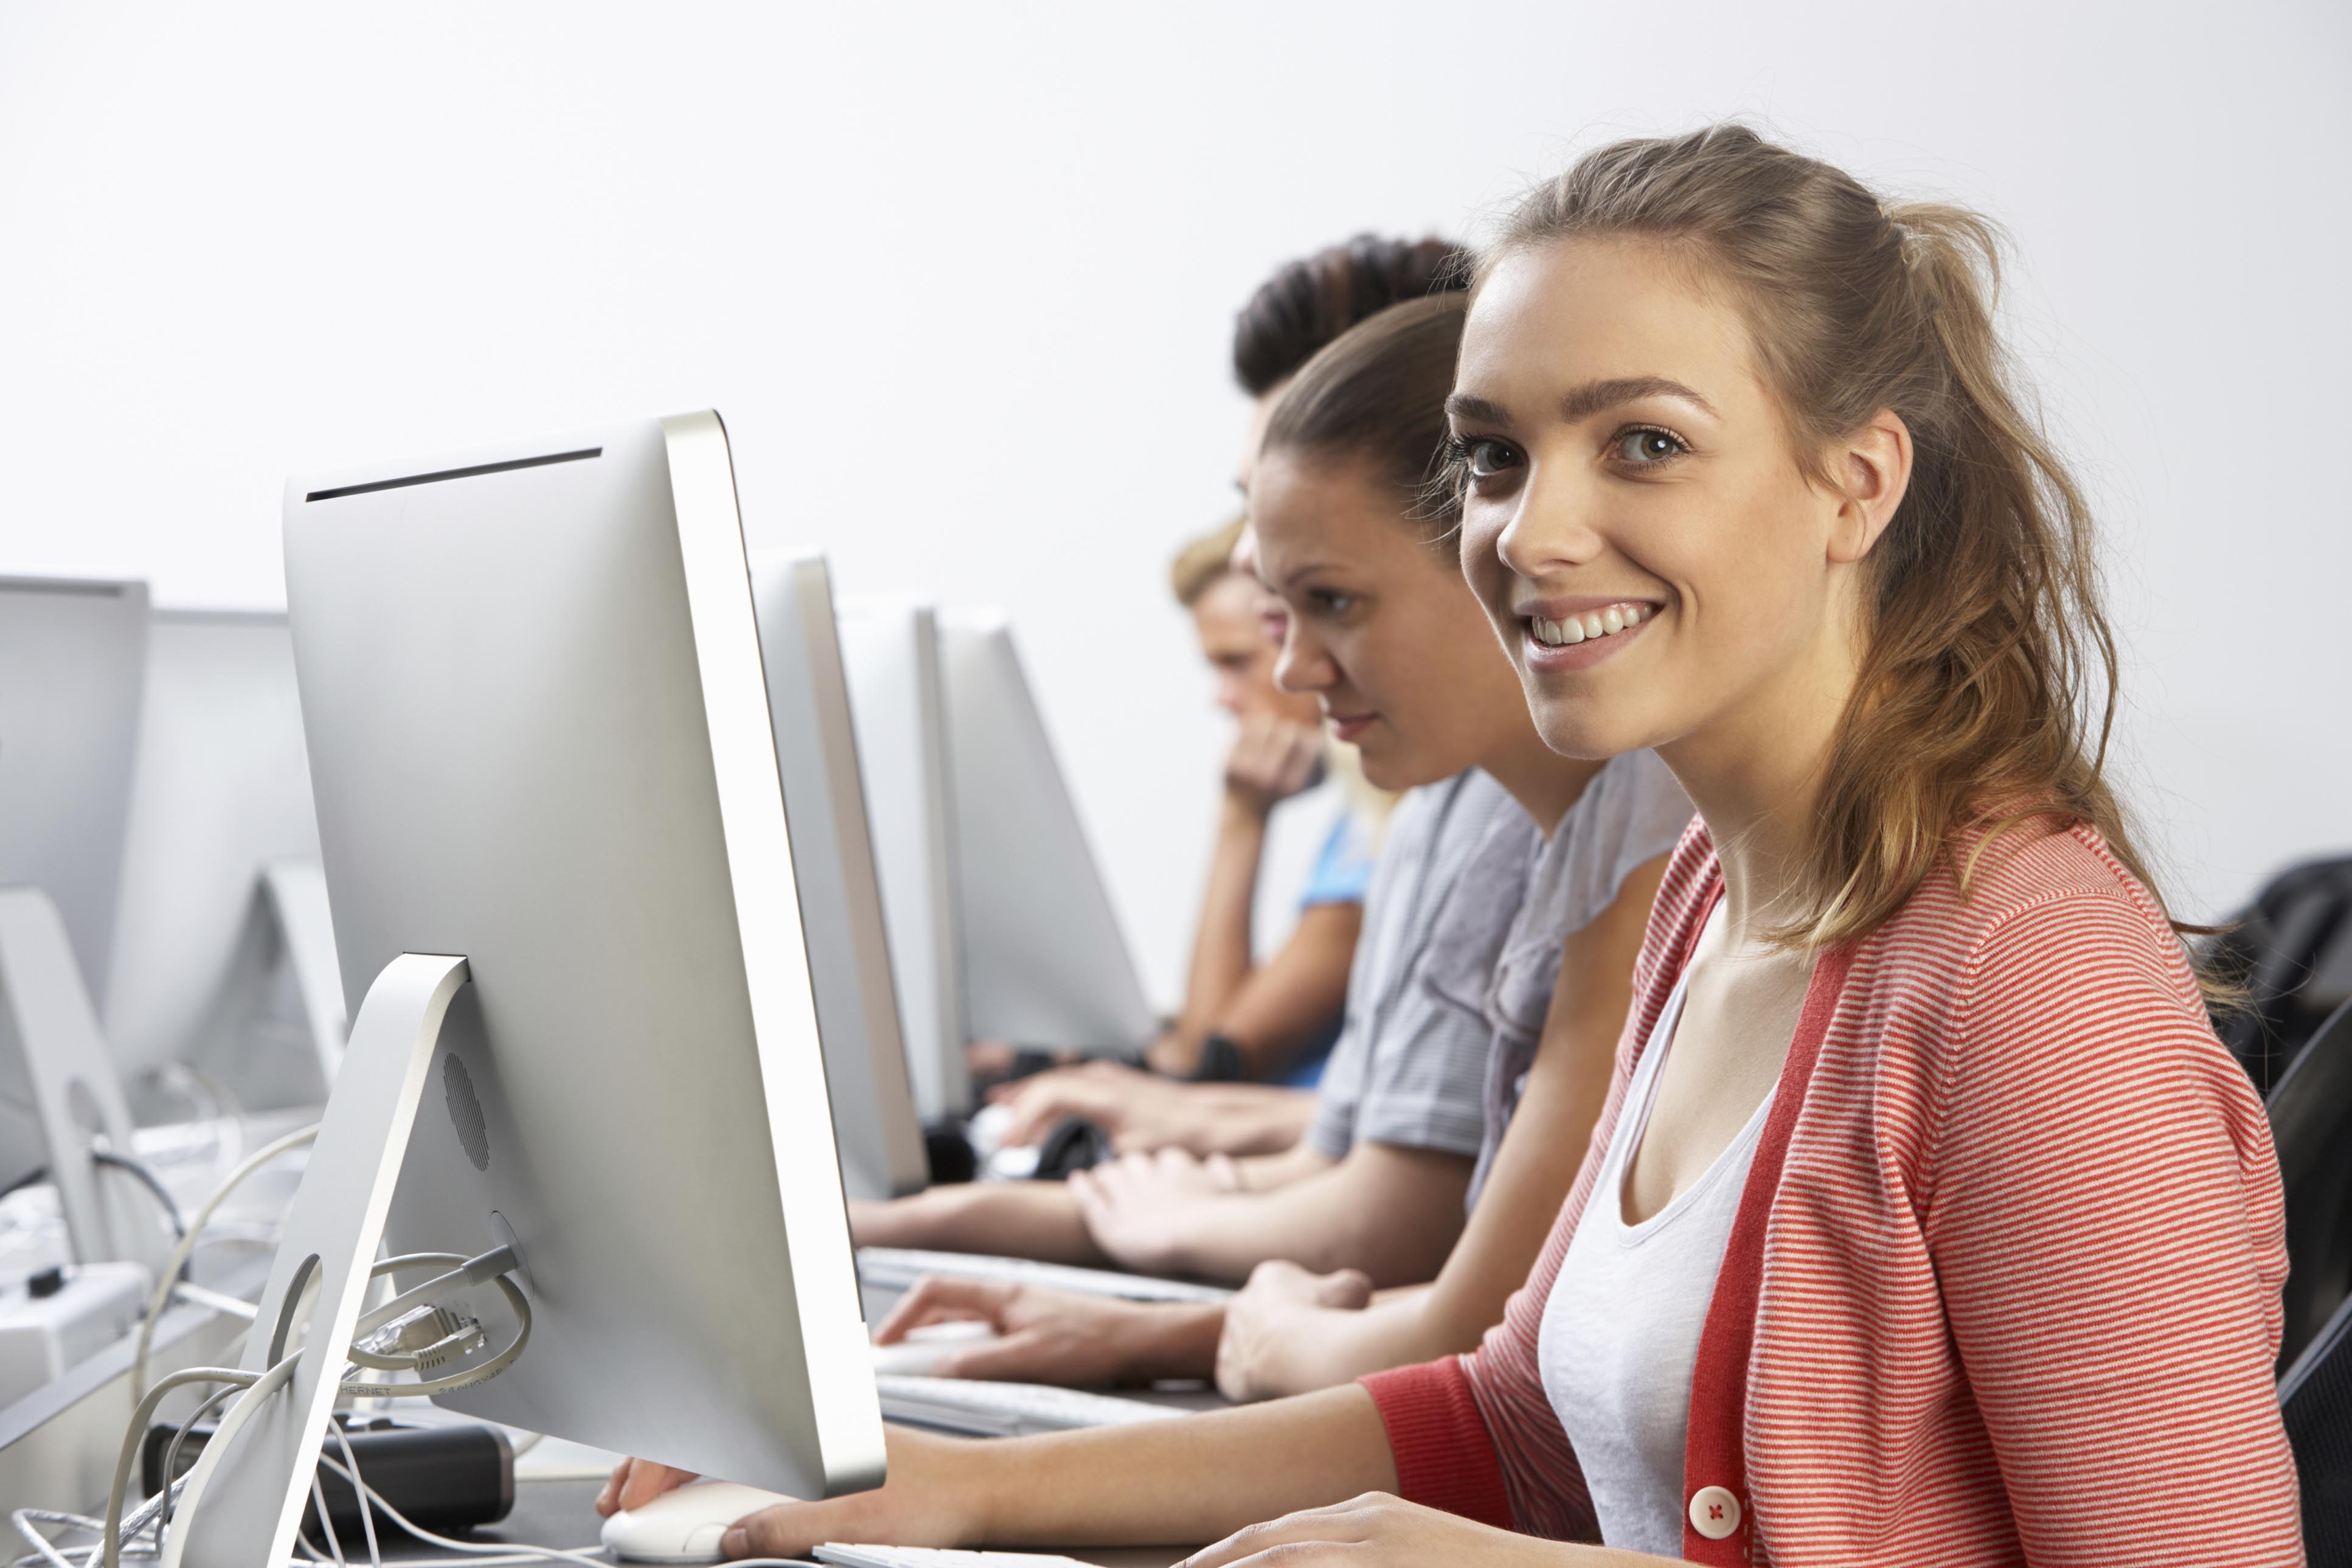 Girl smiling and classmates in background in a computer class.